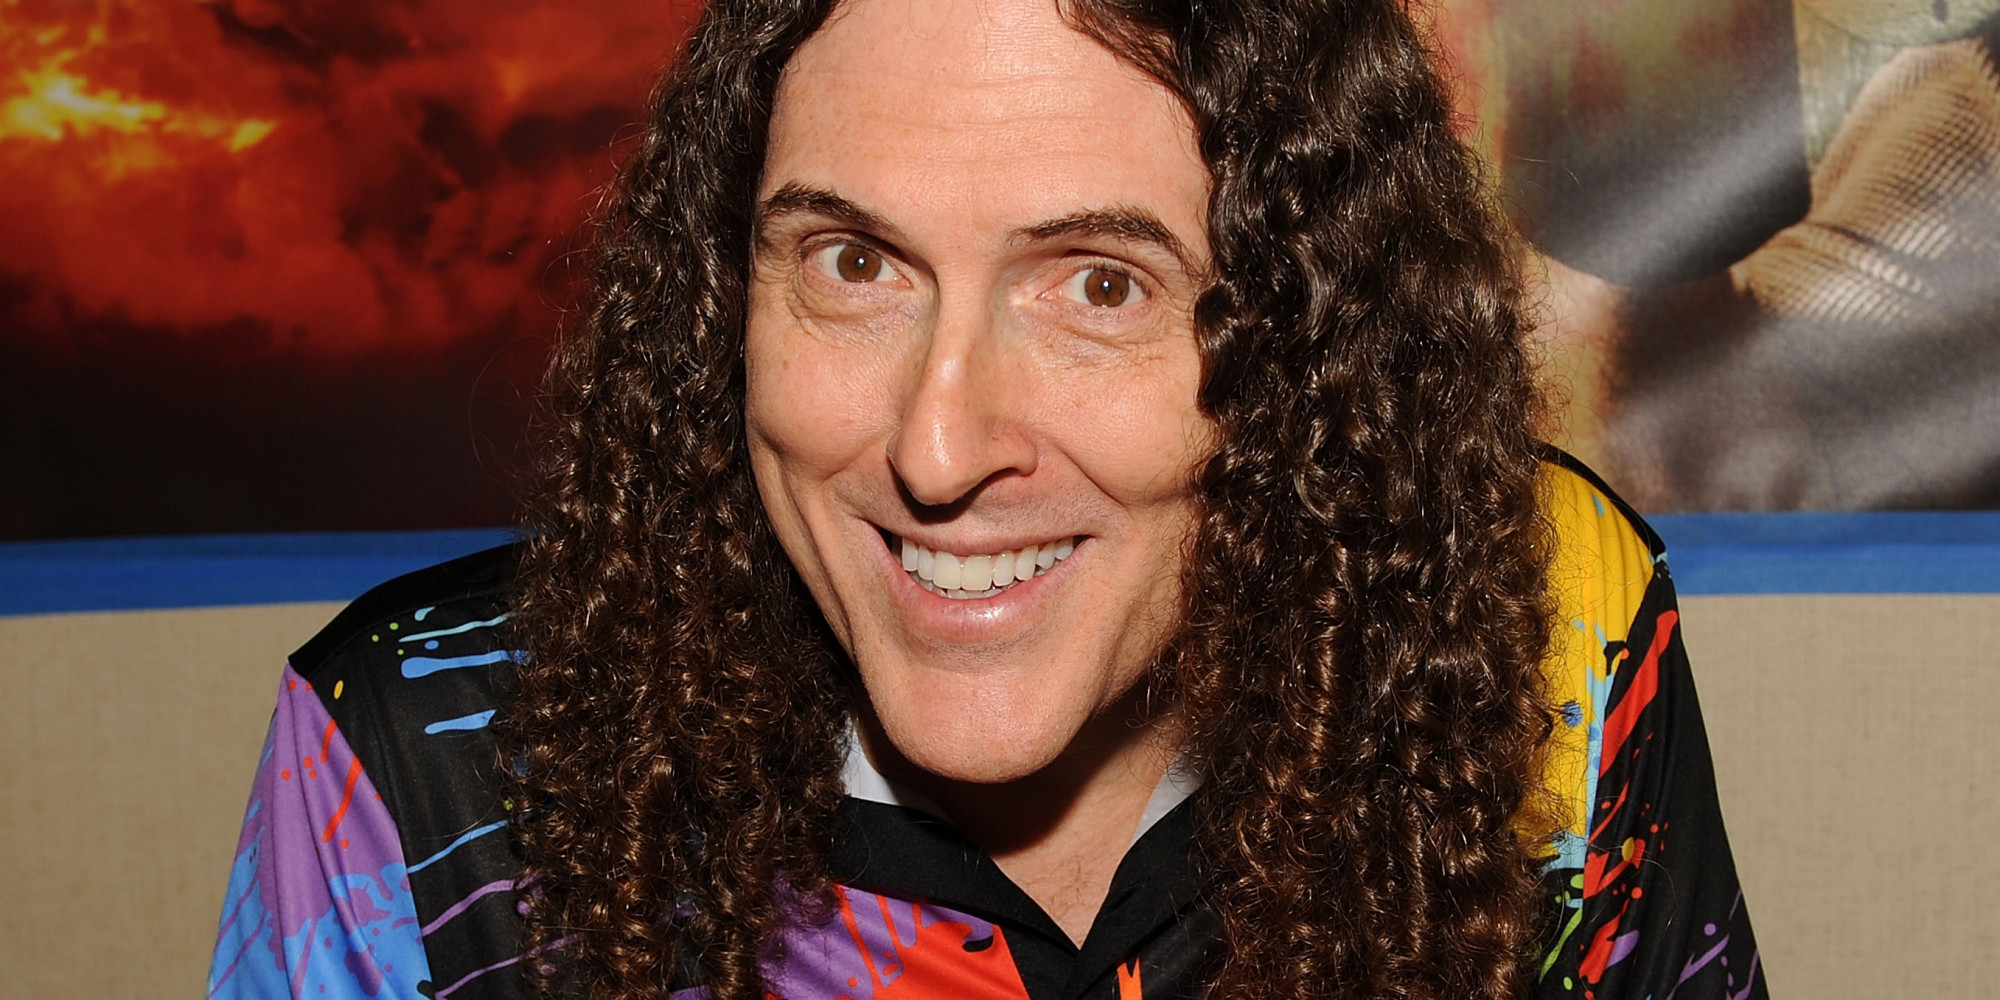 Weird Al Yankovic Backgrounds, Compatible - PC, Mobile, Gadgets| 2000x1000 px